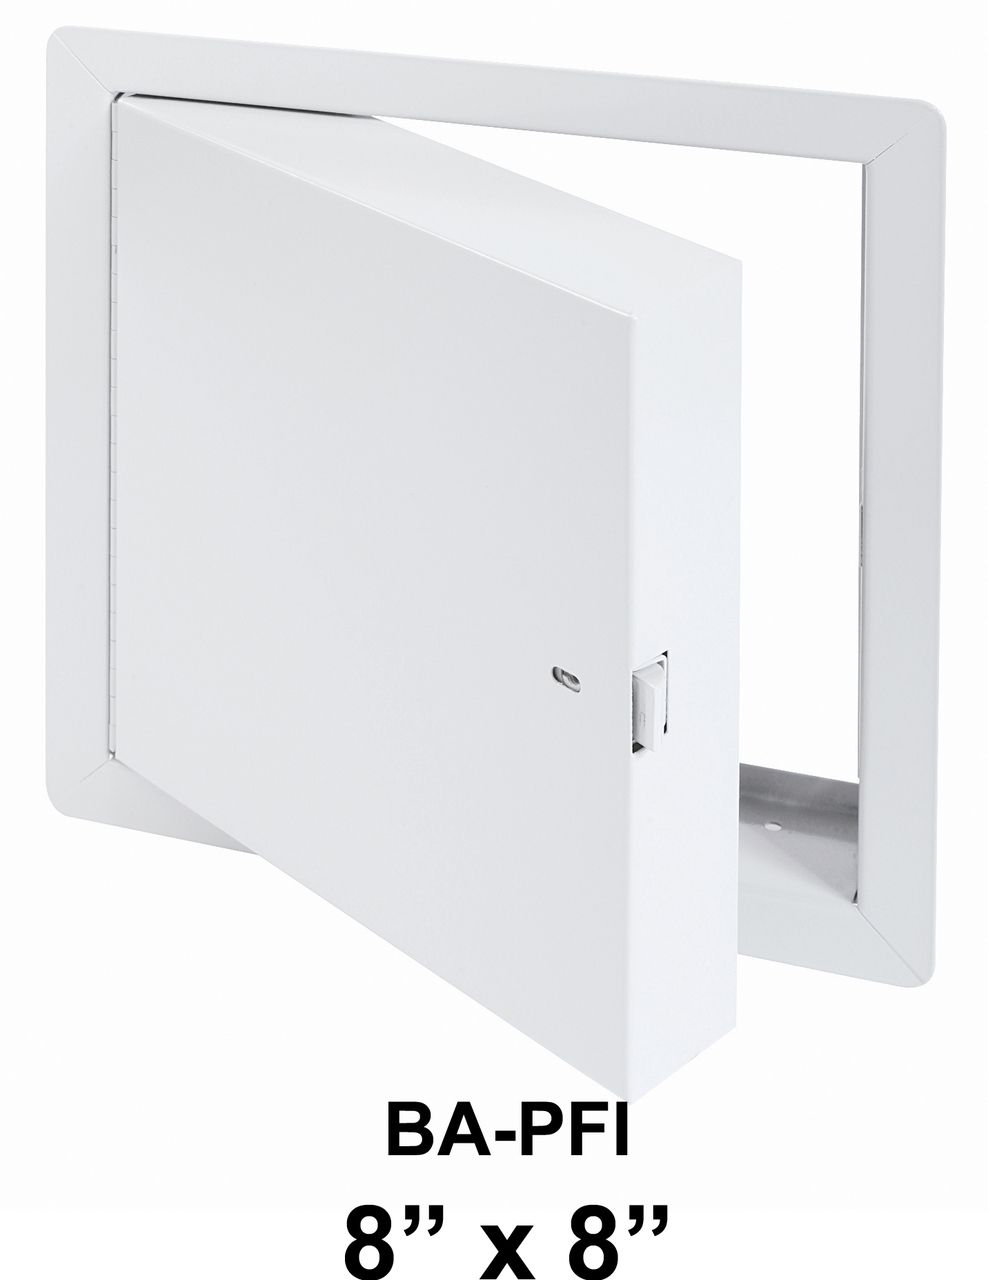 The Ba Pfi Access Door Is Insulated With 2 Thick Mineral Wool And Can Be Use Appliances Storage Kitchen Appliance Storage Outdoor Kitchen Appliances